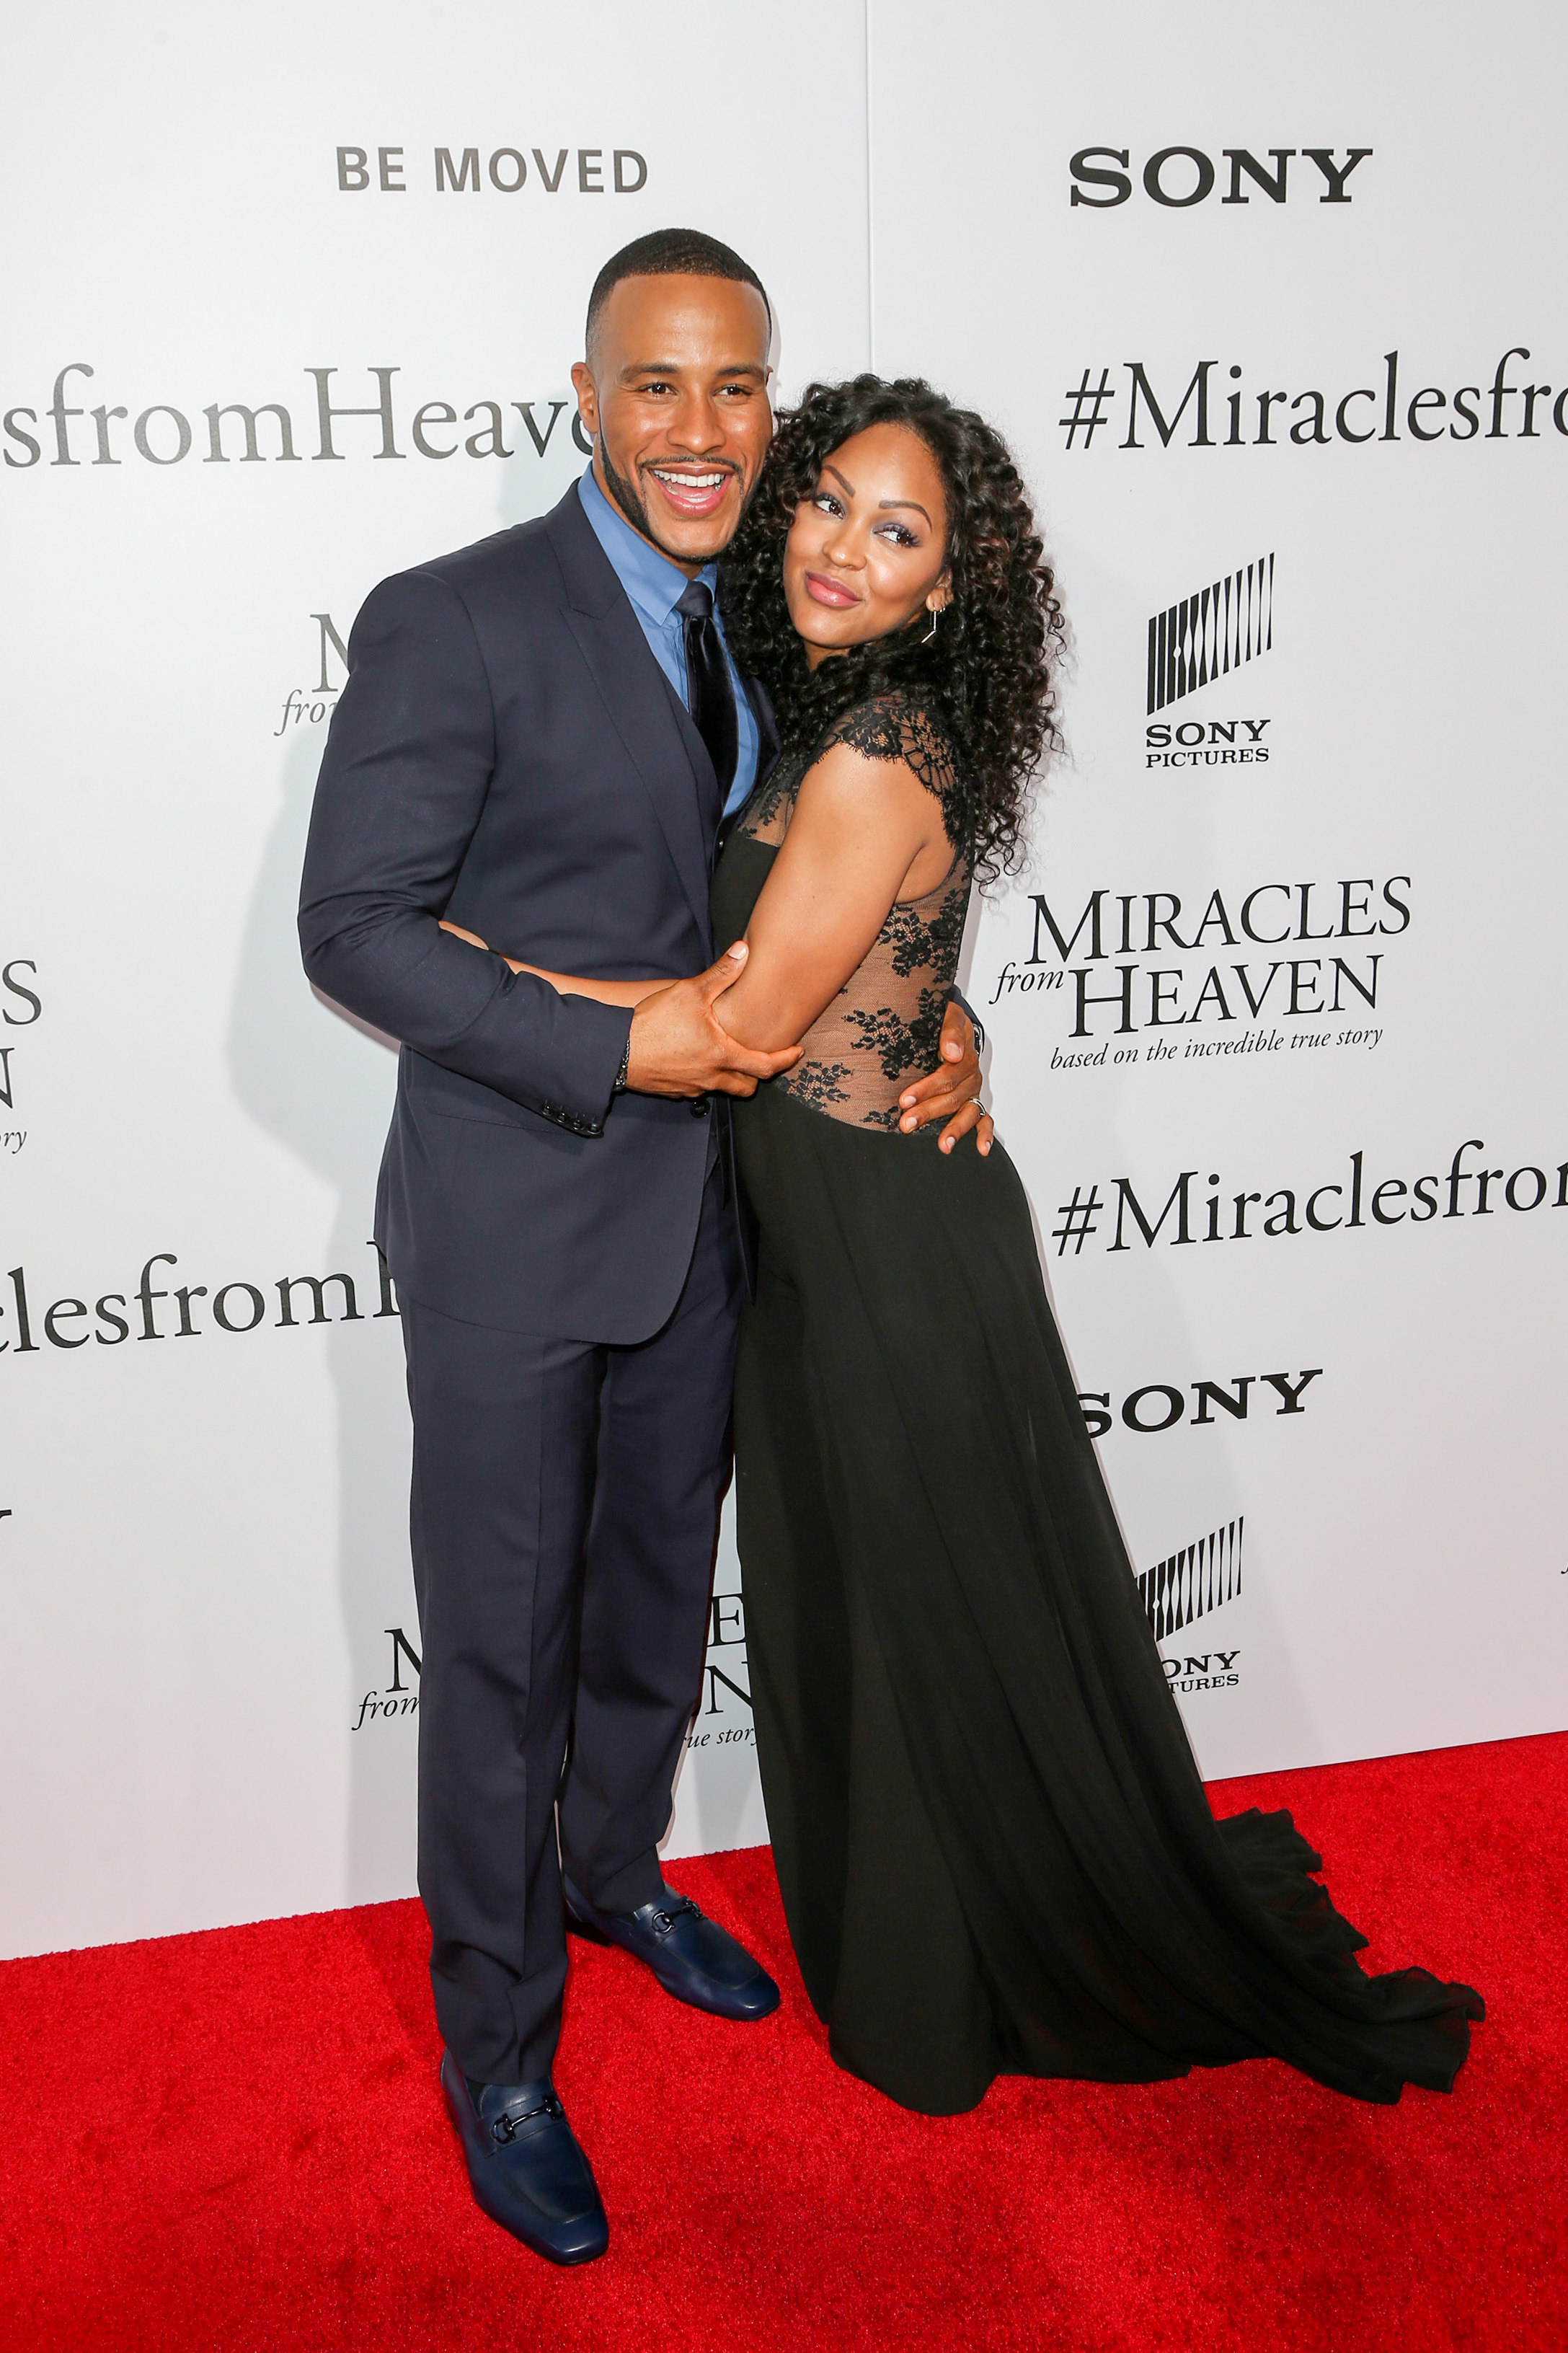 "03/09/2016 - DeVon Franklin and Meagan Good - ""Miracles From Heaven"" Los Angeles Premiere - Arrivals - ArcLight Hollywood Cinemas, 6360 Sunset Boulevard - Los Angeles, CA, USA - Keywords: Vertical, Portrait, Photography, Person, People, Celebrity, Celebrities, Red Carpet Event, Arts Culture and Entertainment, Bestof, Topix, Columbia Pictures, TriStar Pictures, Sony Pictures, Los Angeles, California Orientation: Portrait Face Count: 1 - False - Photo Credit: PRPhotos.com - Contact (1-866-551-7827) - Portrait Face Count: 1"